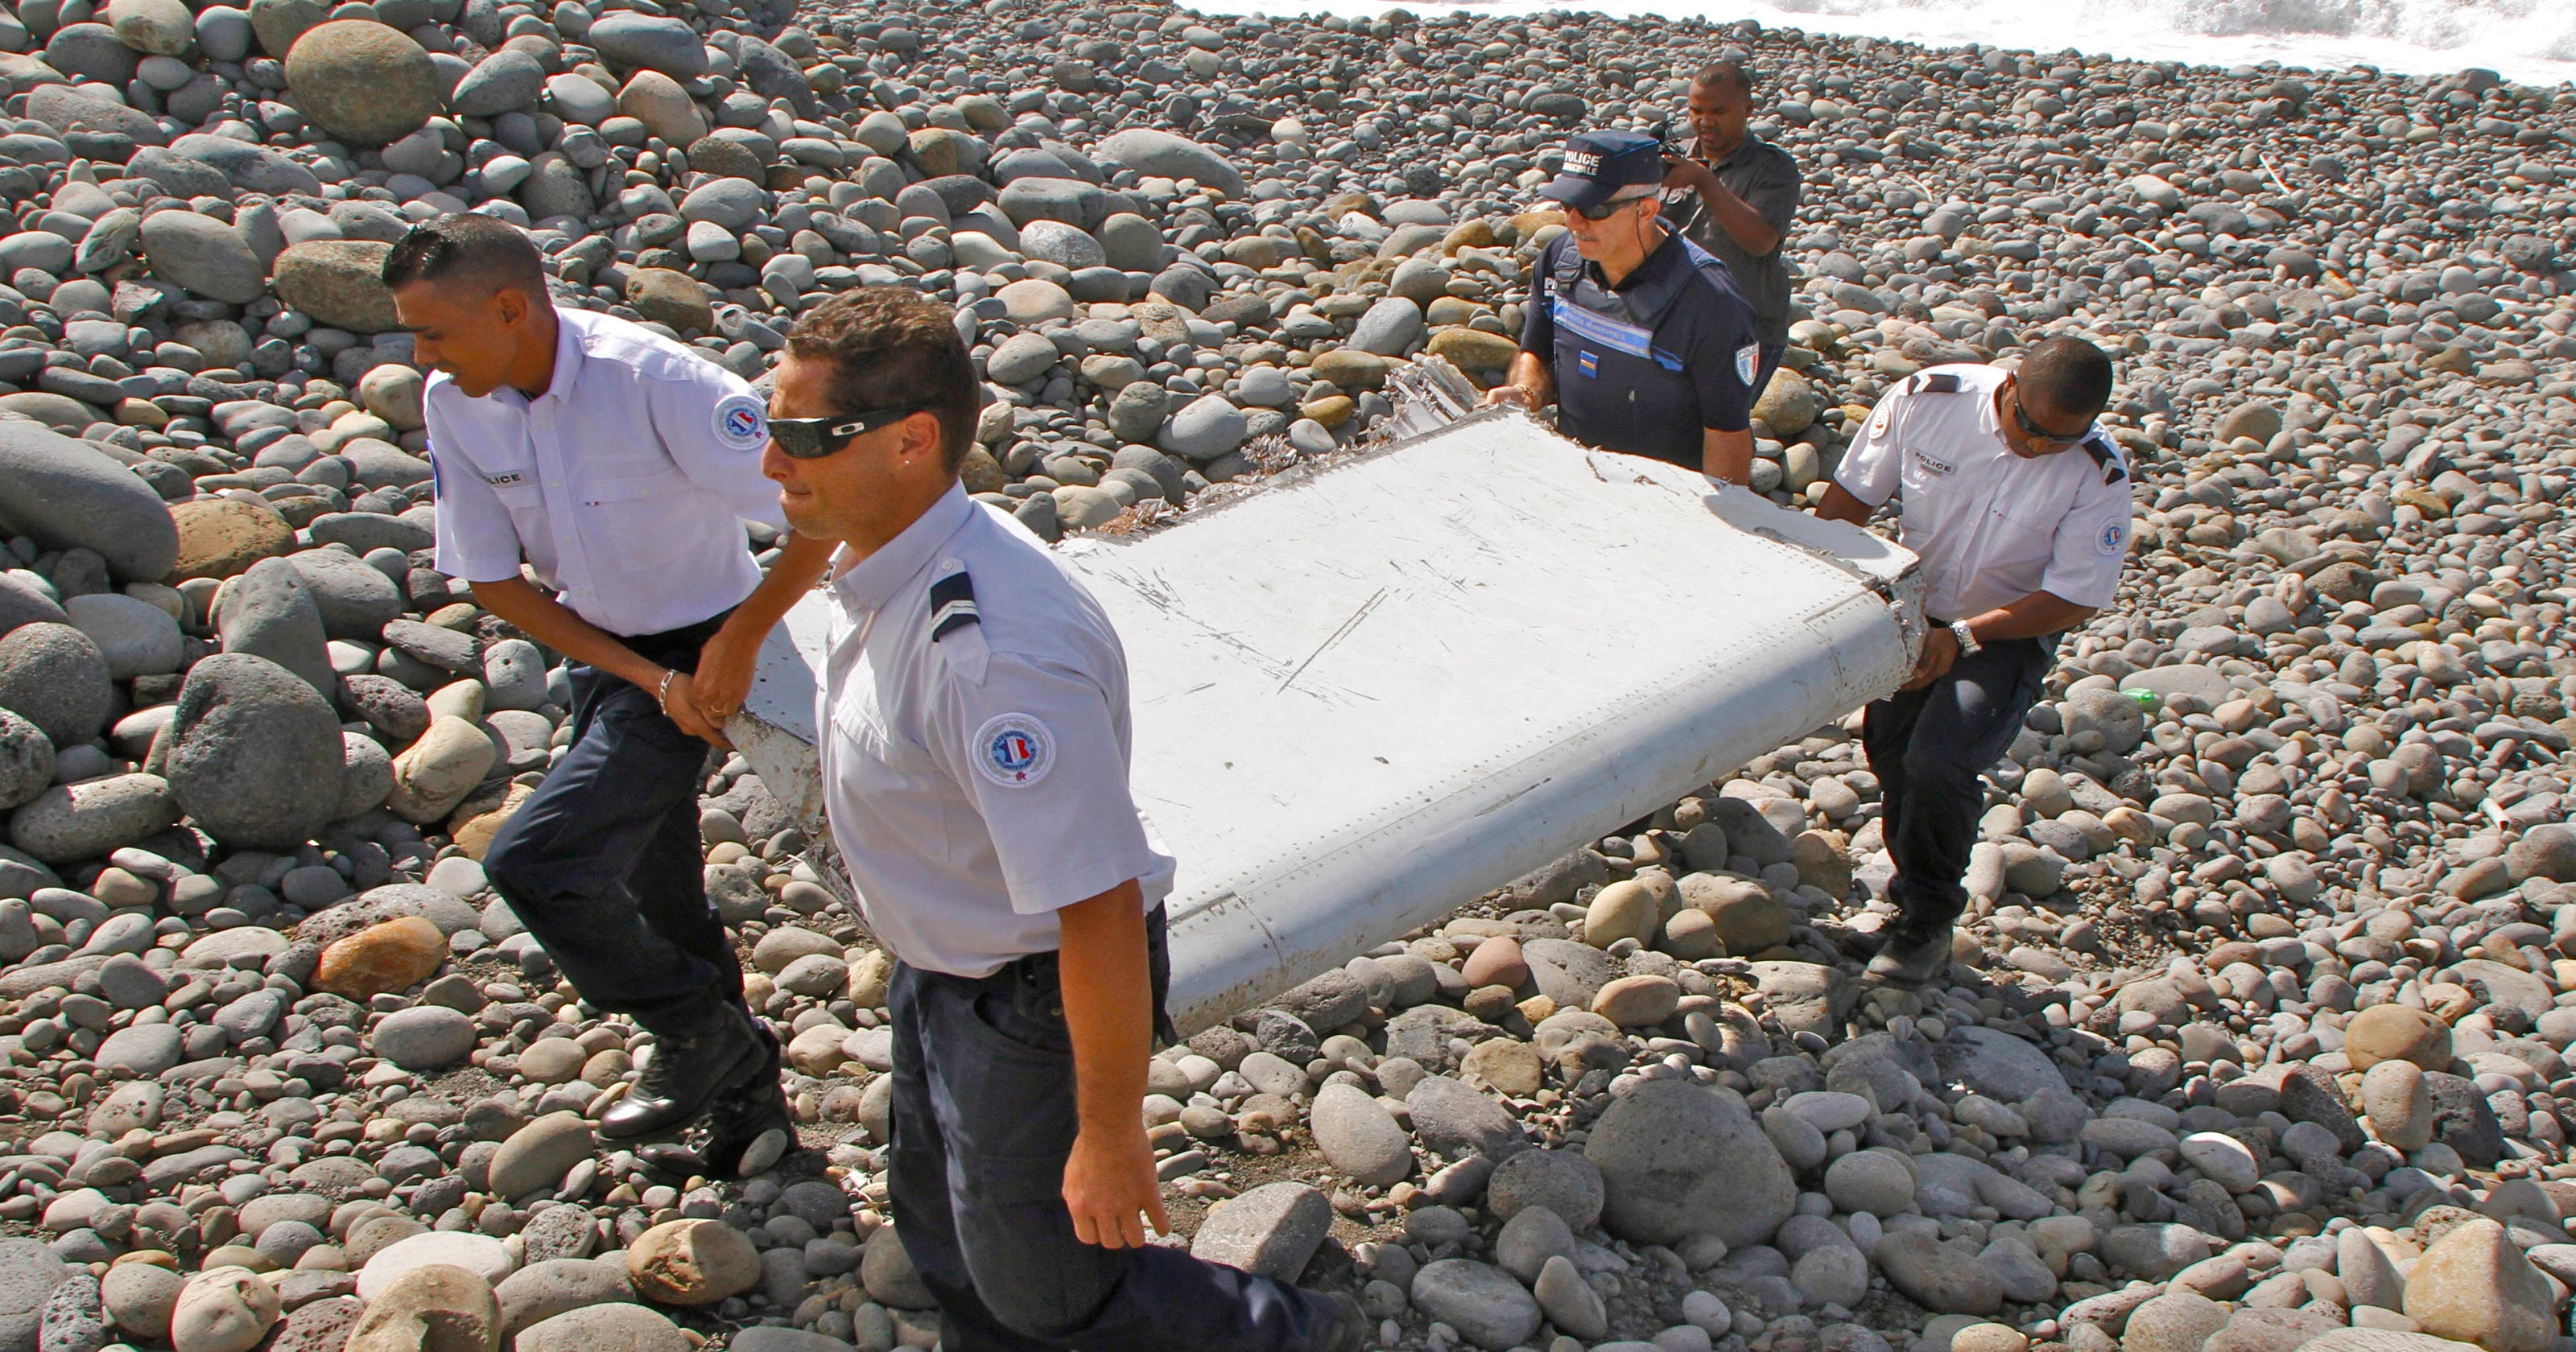 Wing flap found on island traced to missing malaysian jet publicscrutiny Gallery